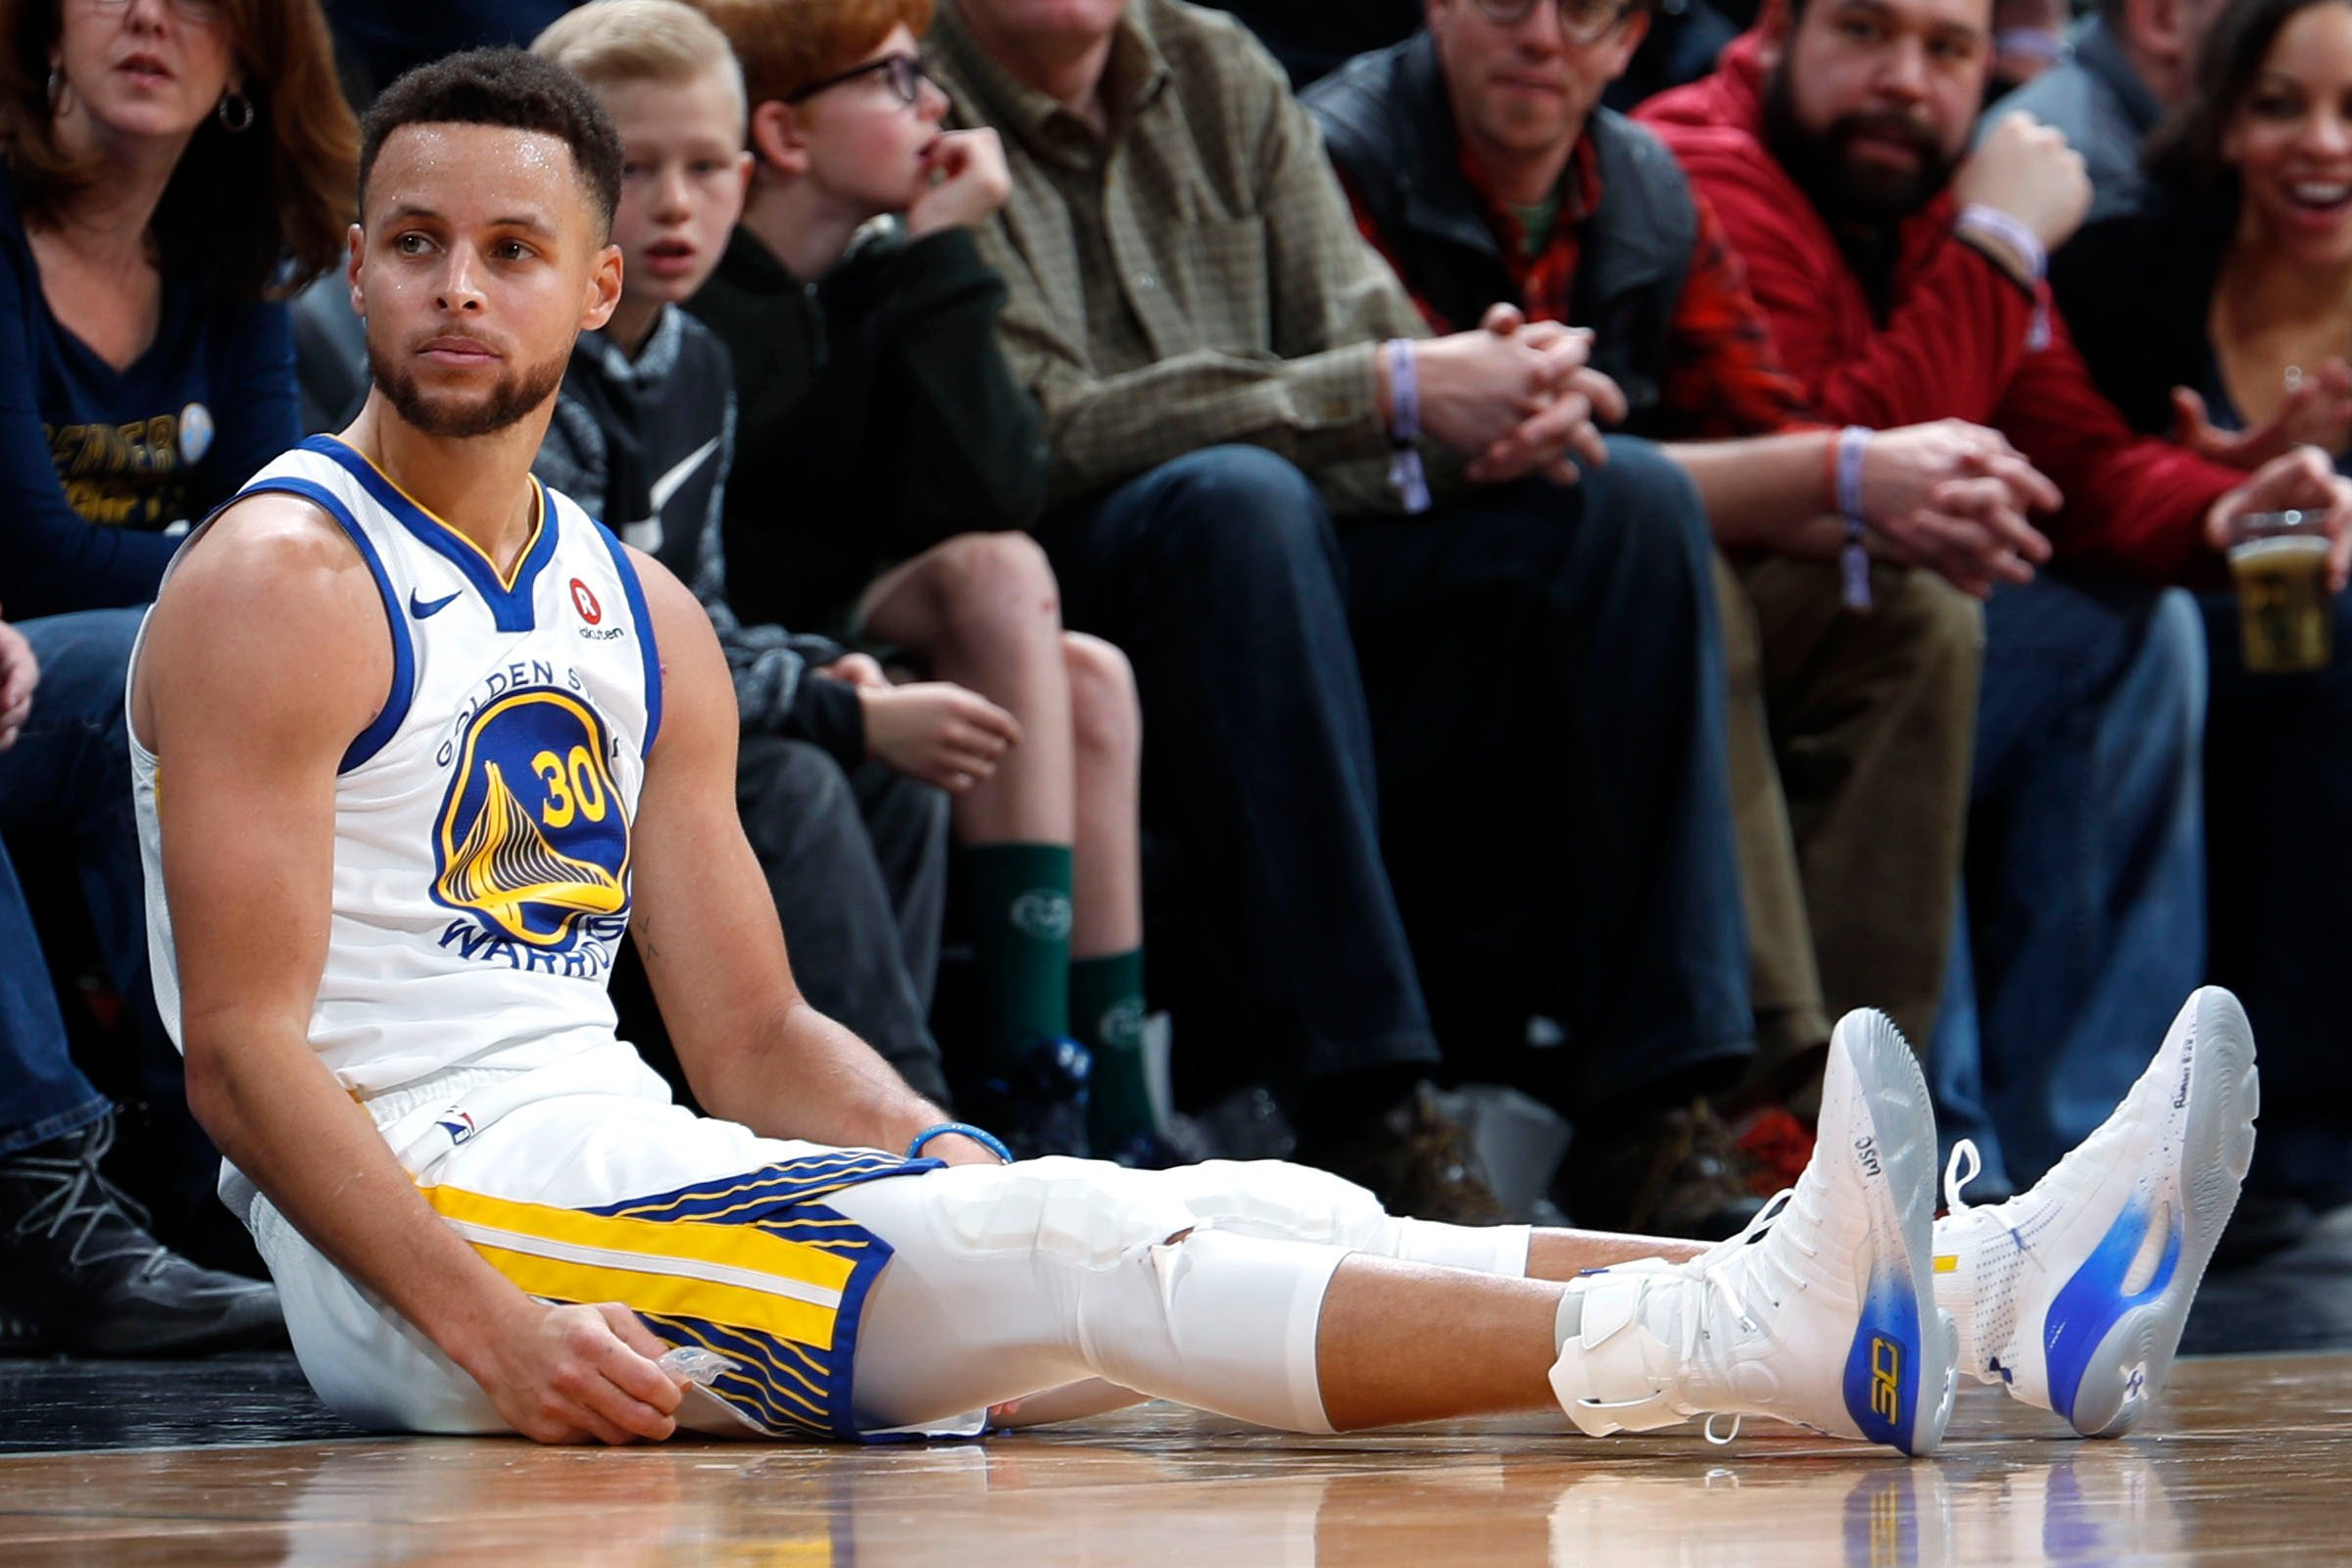 Warriors fall to a team they should always beat but don't